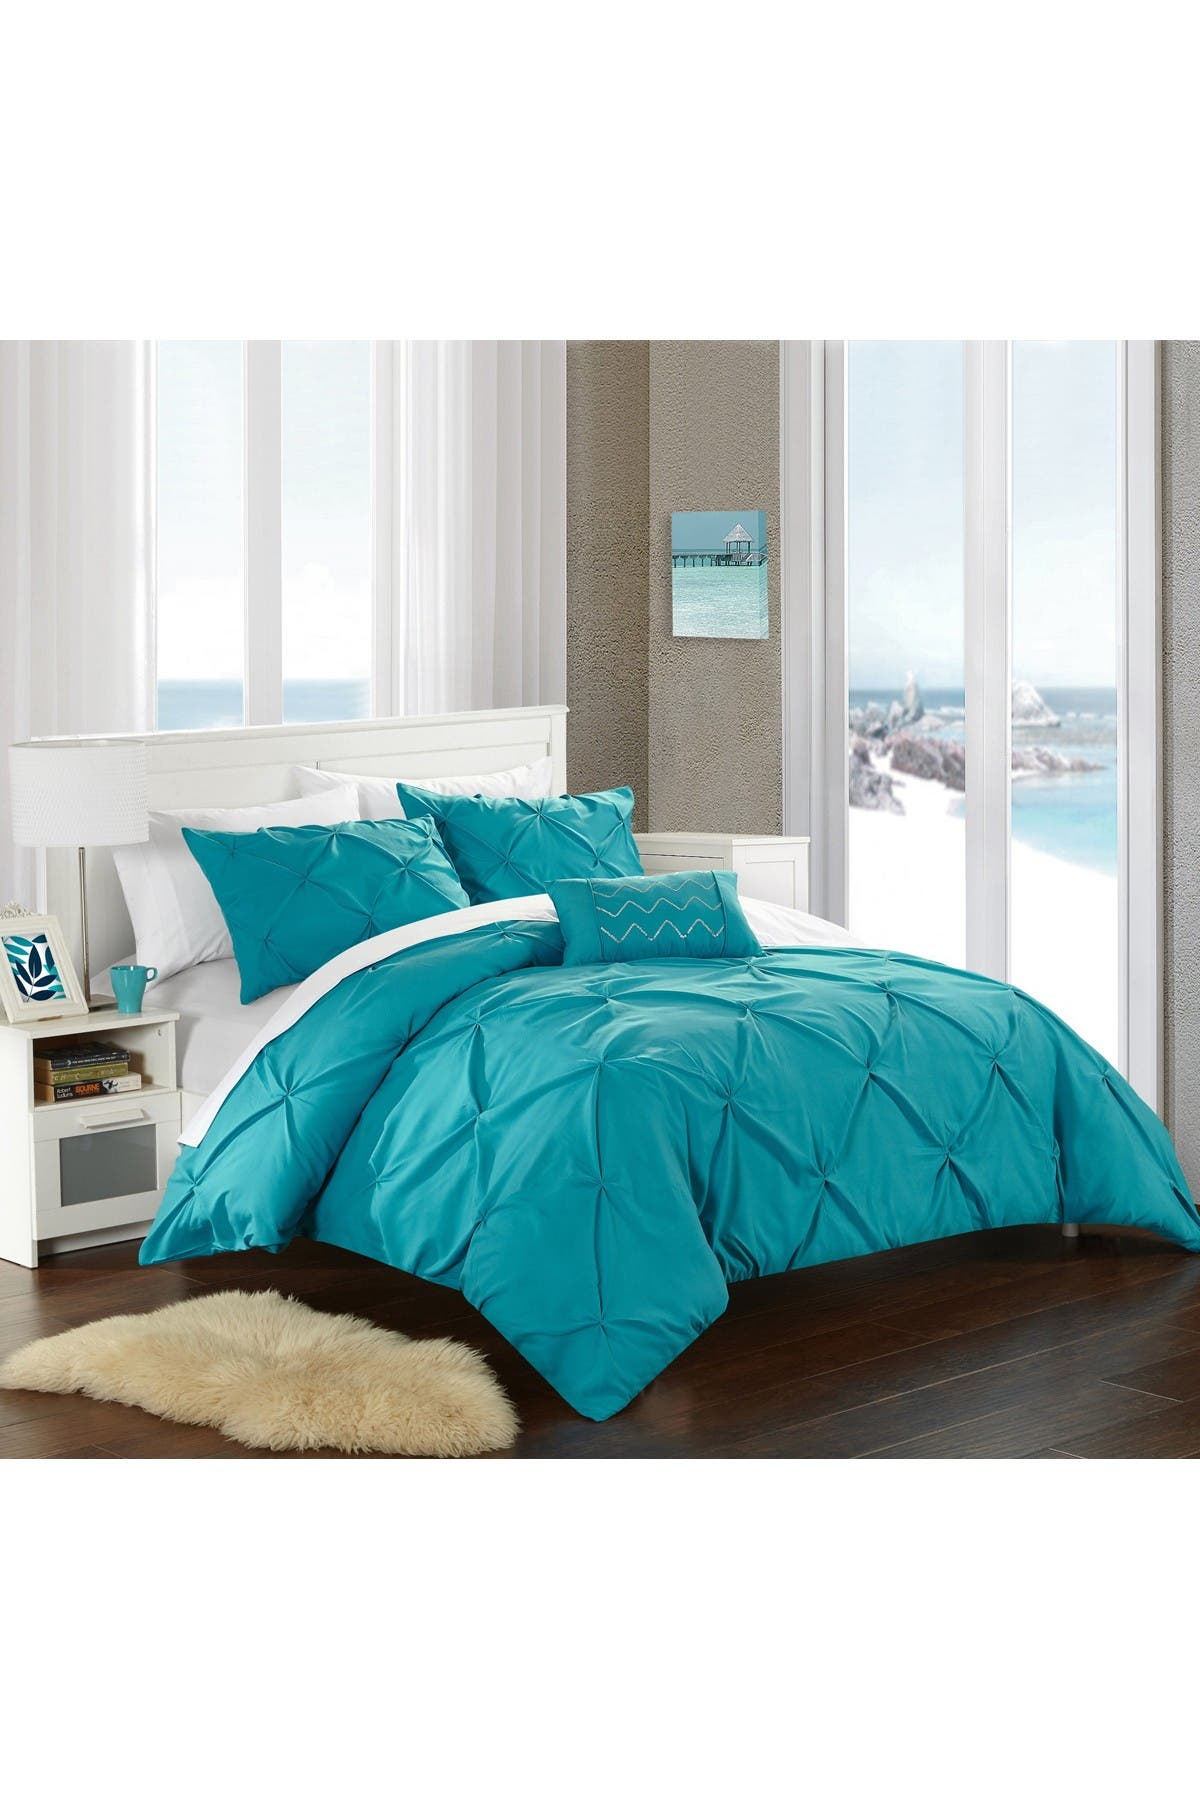 Chic Home Bedding Weber Pinch Pleated Ruffled Pleated Complete King Duvet Cover 4 Piece Set Turquoise Nordstrom Rack